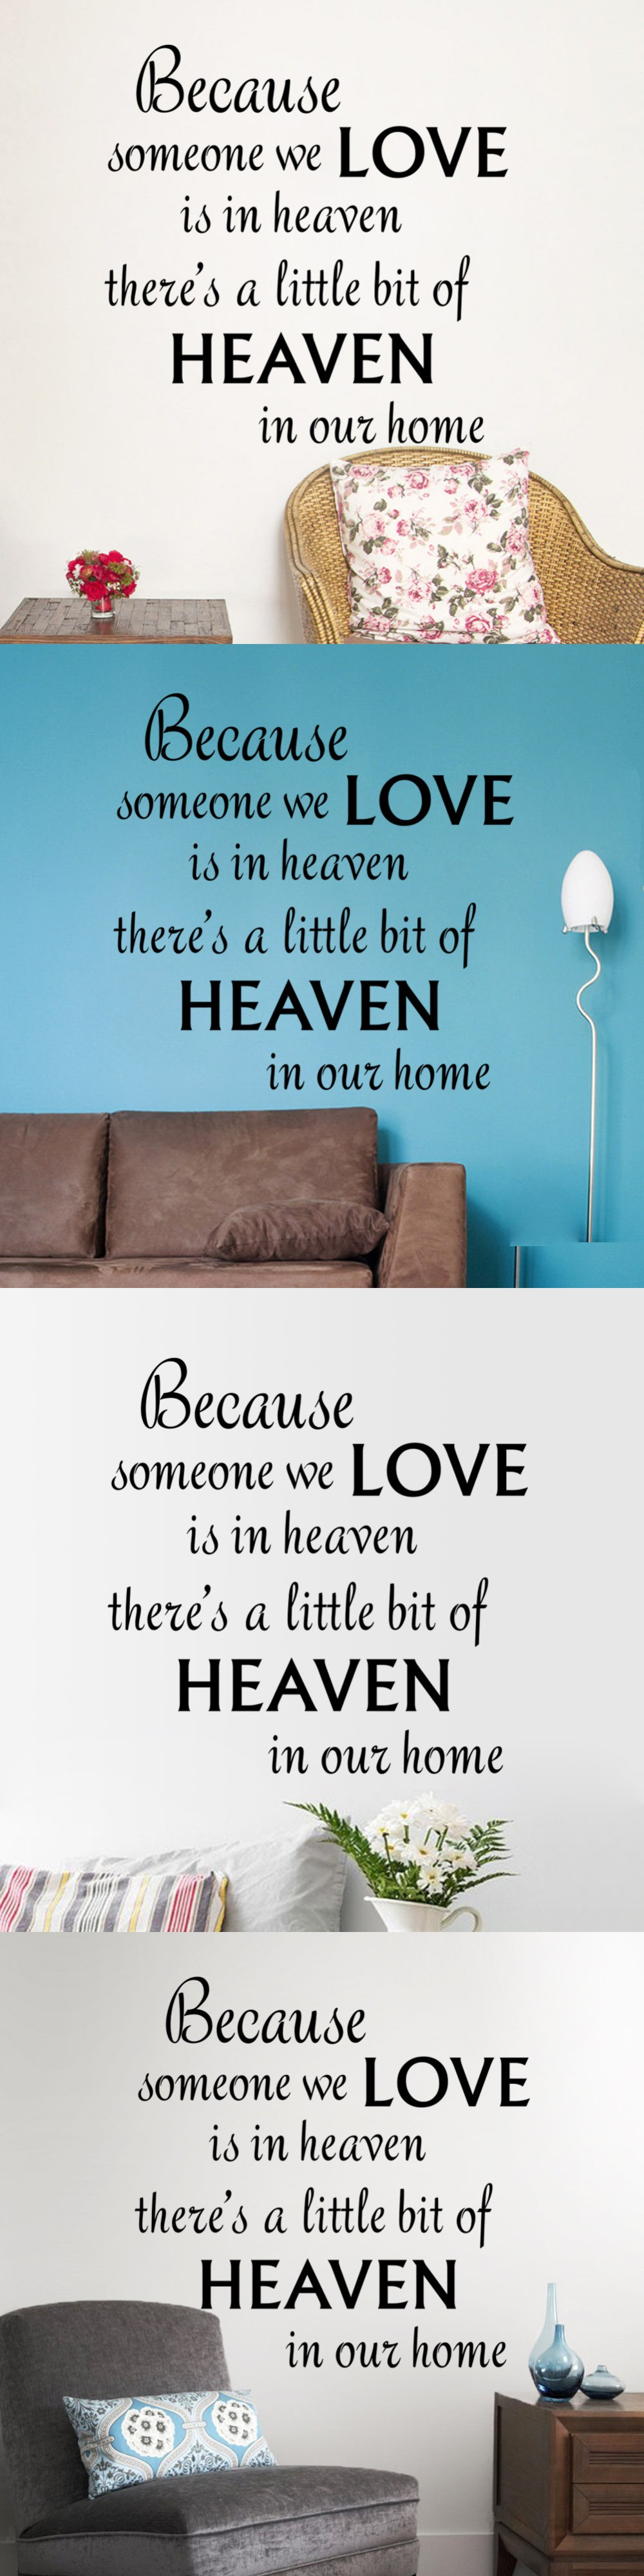 Wedding decorations quotes  New warm quote LOVE HEAVEN home decal wall sticker removable